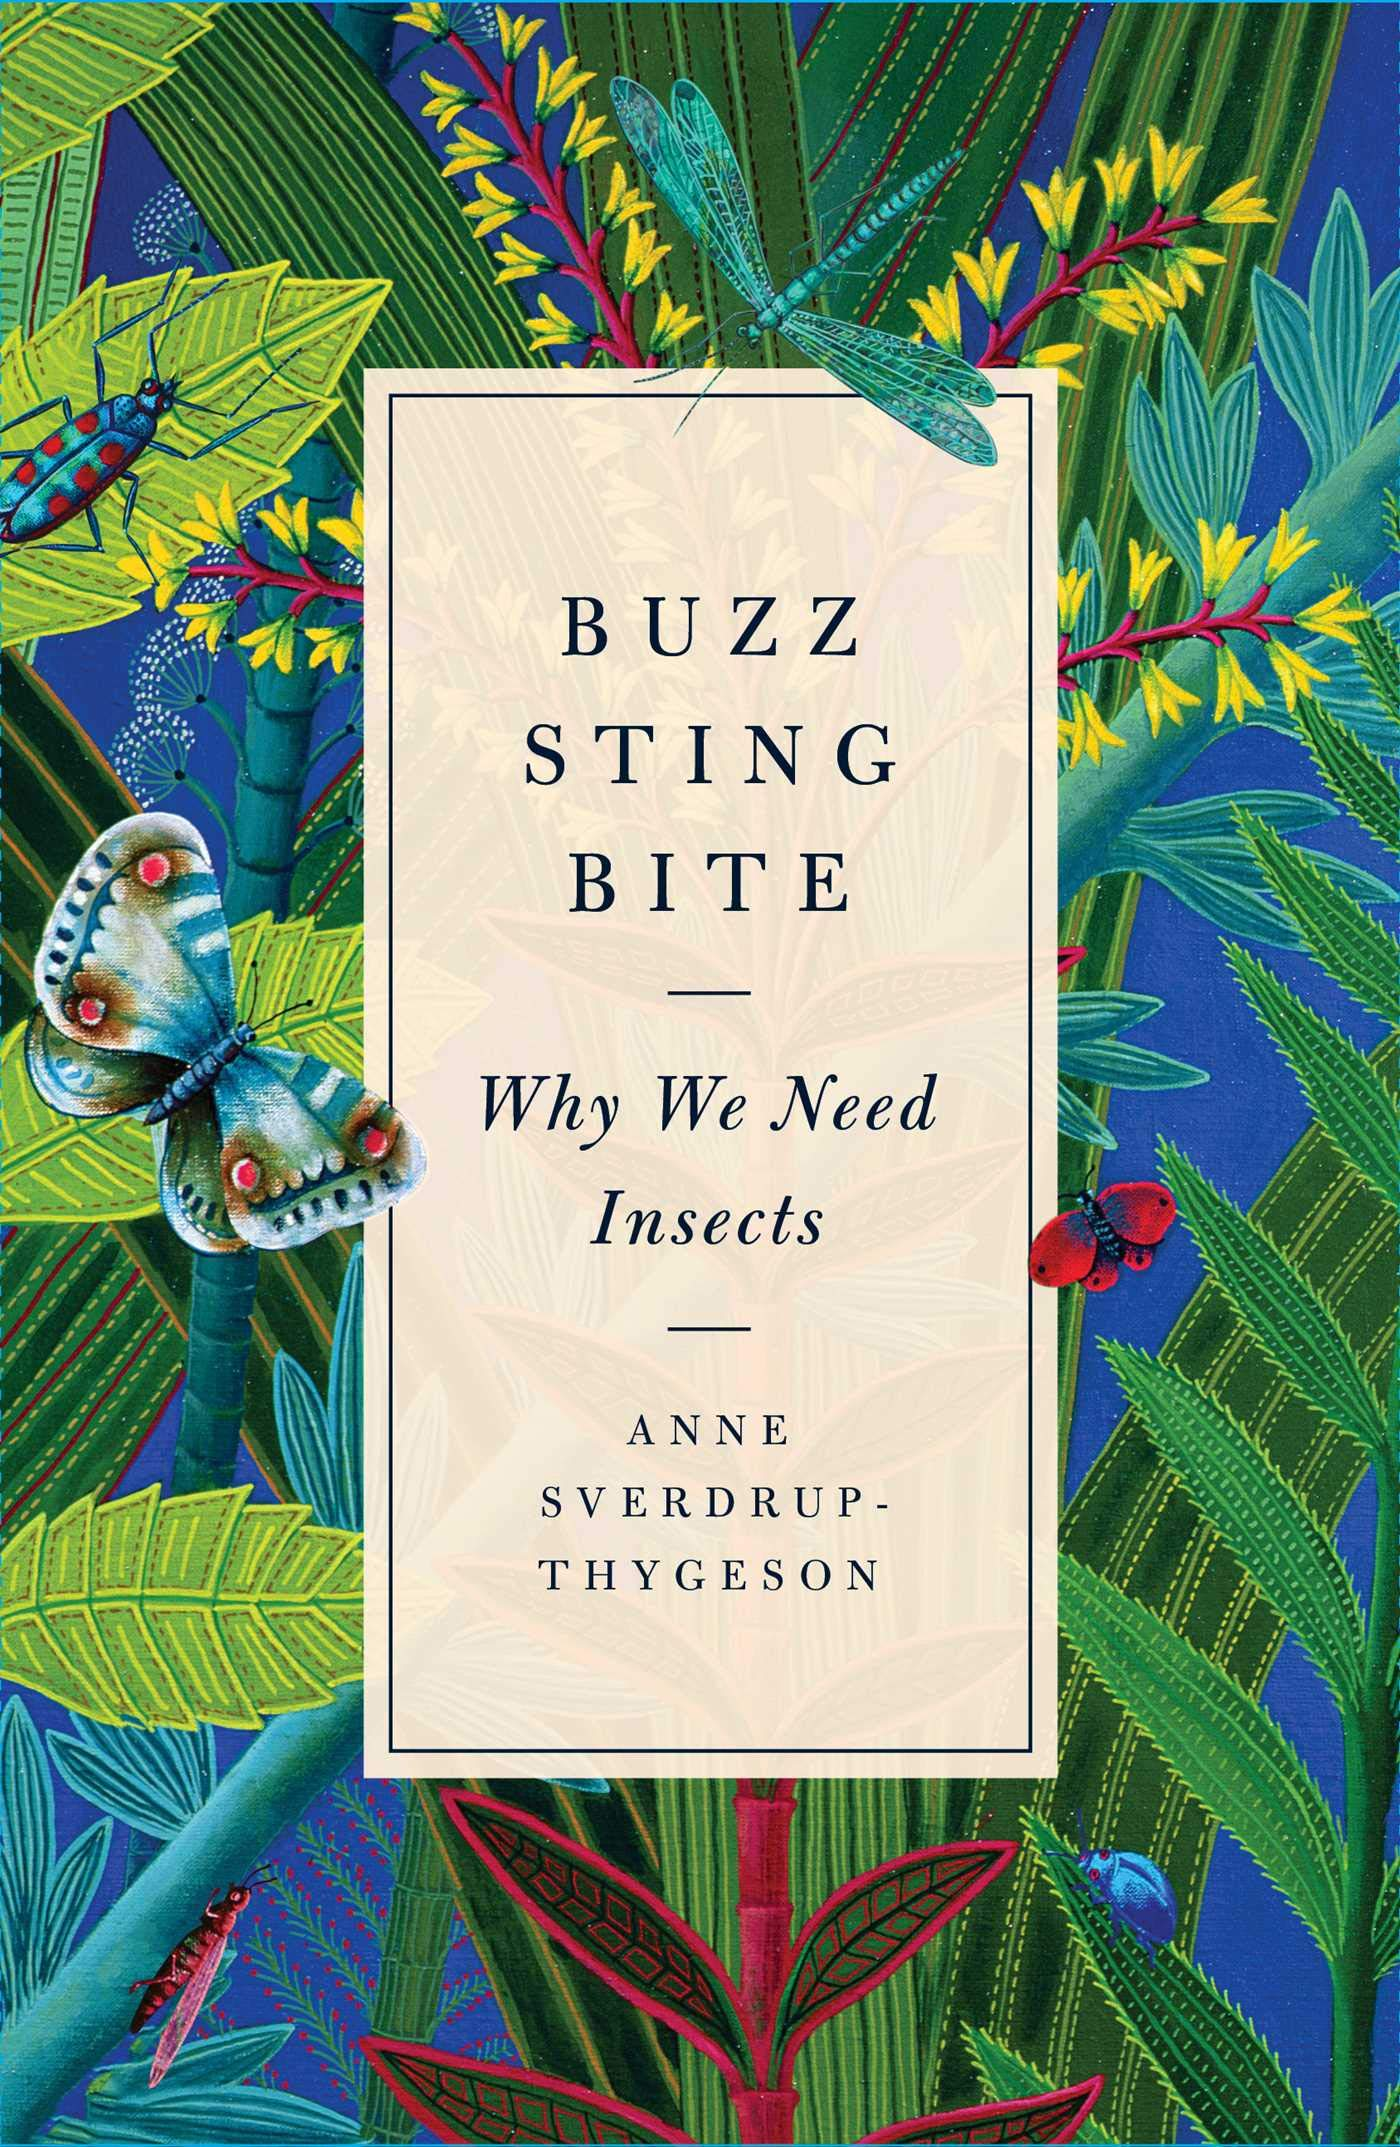 Buzz, Sting, Bite: Why We Need Insects: Anne Sverdrup